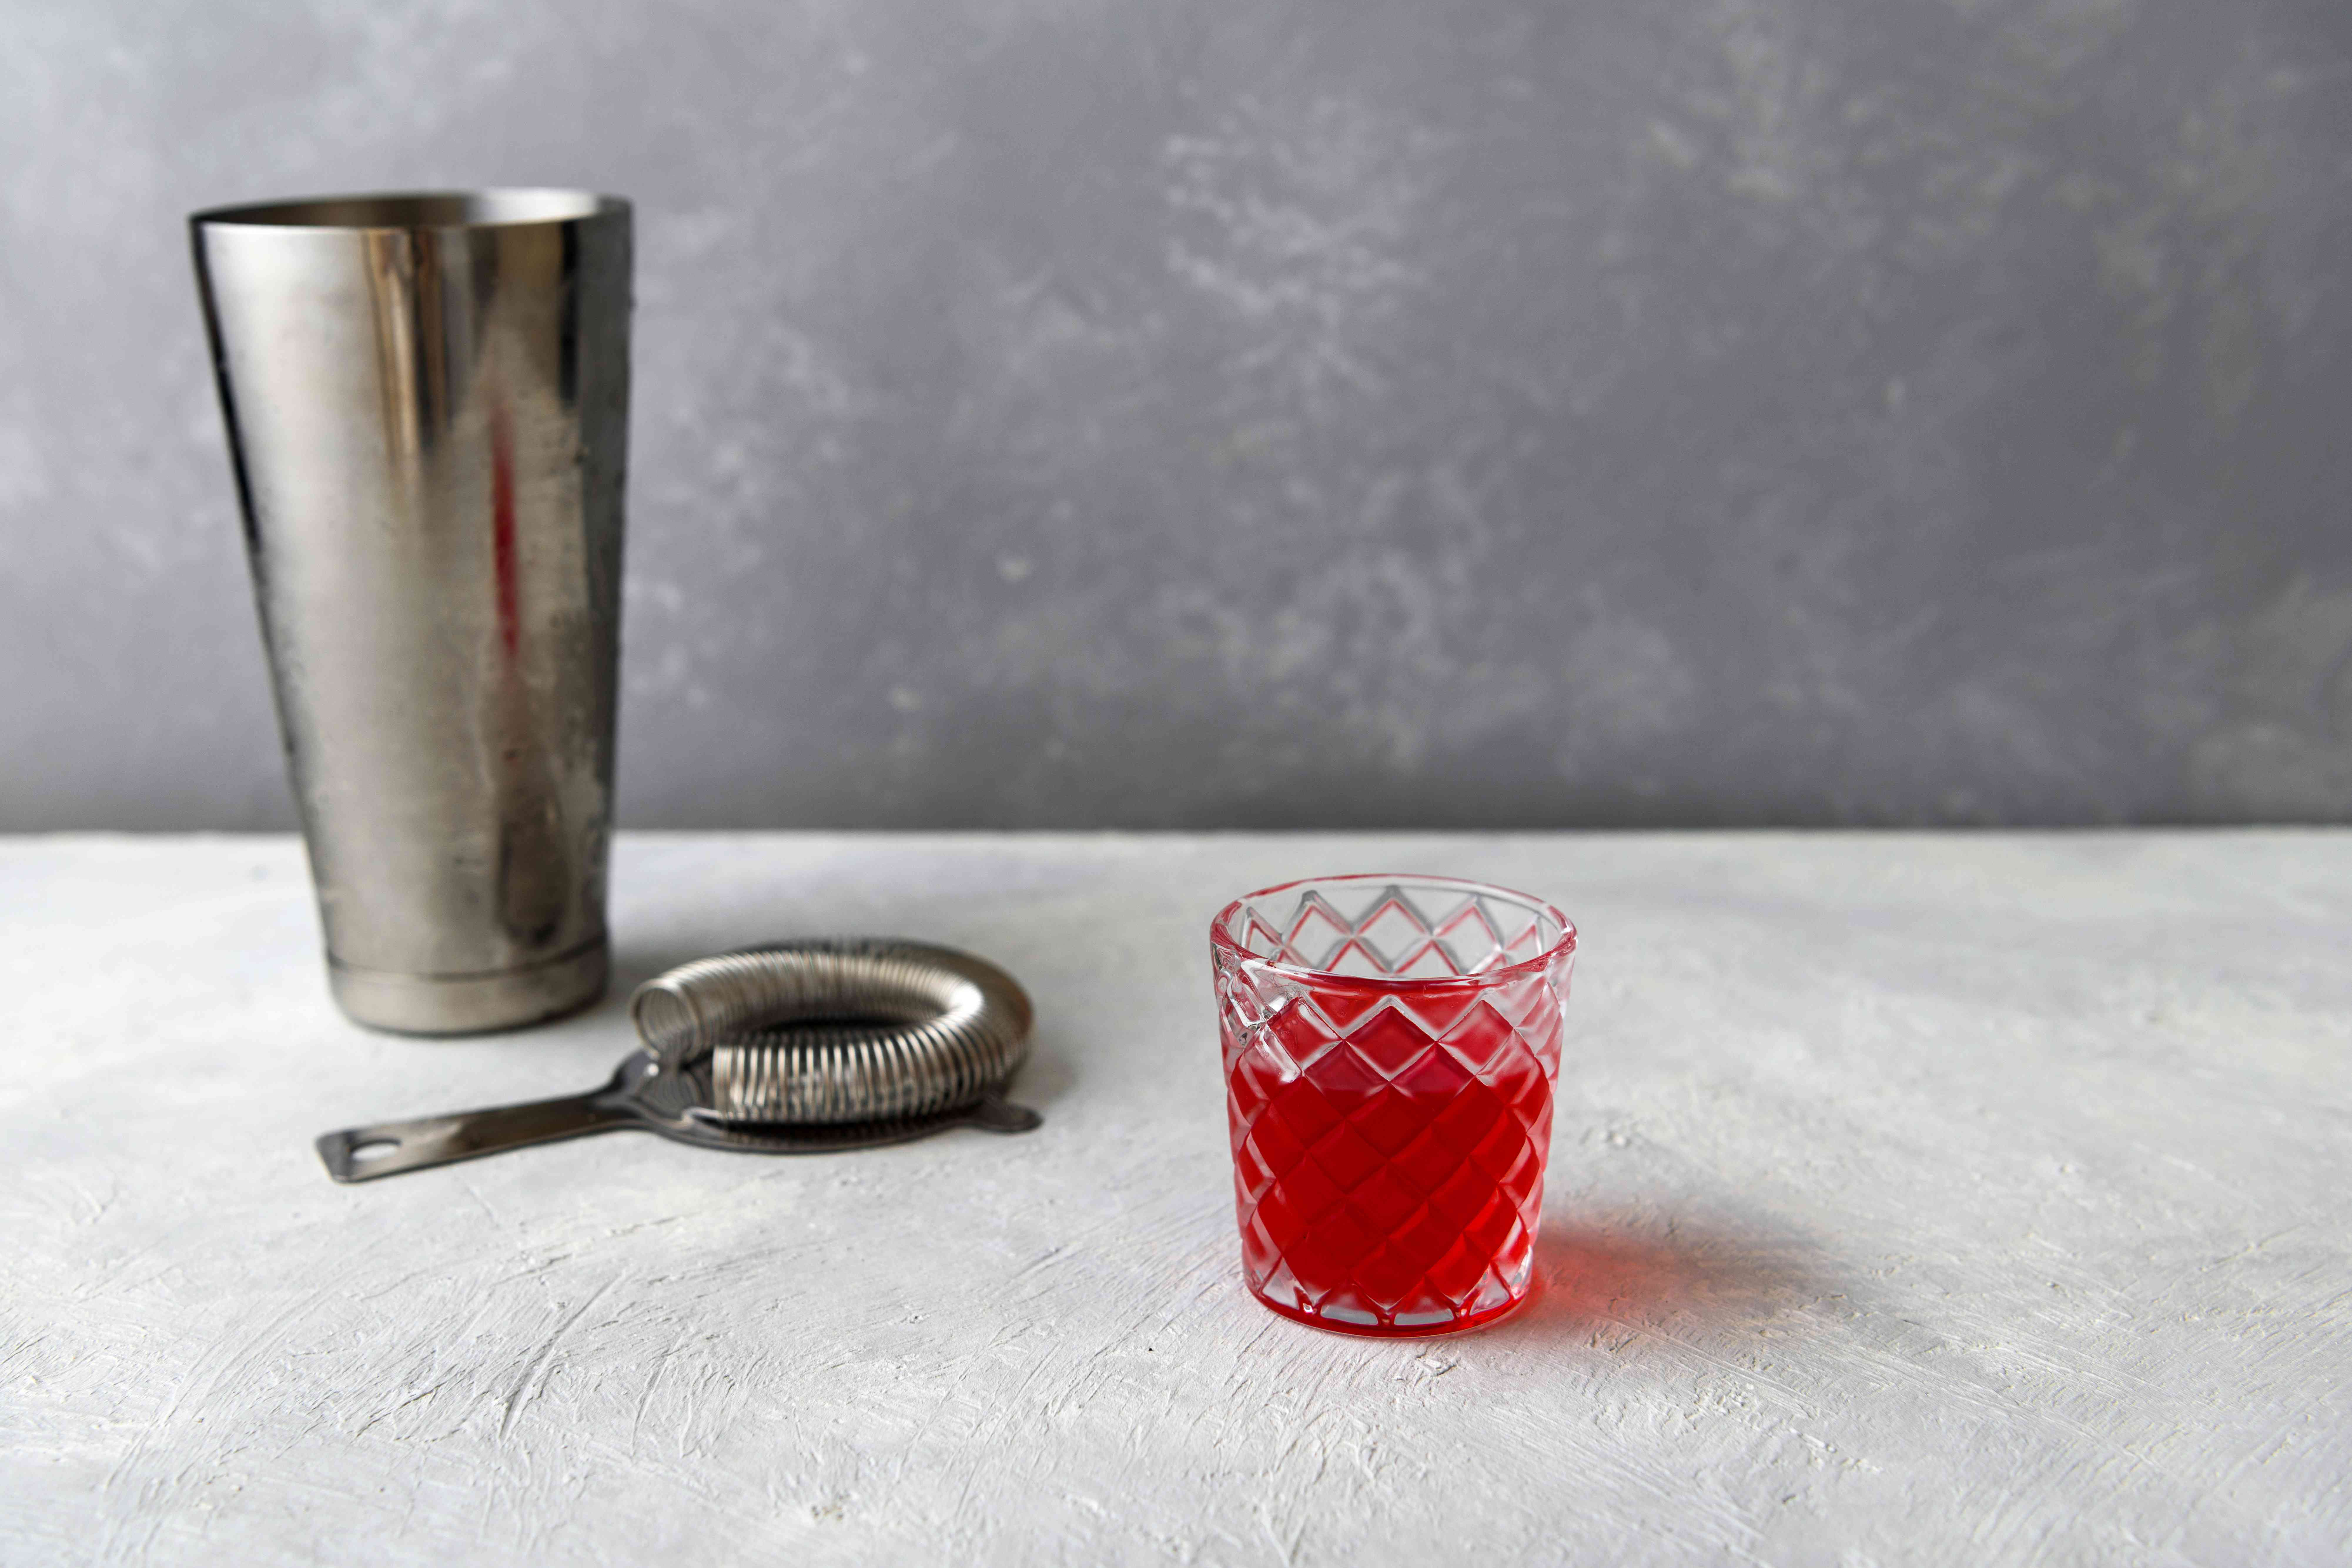 strain cocktail into the glass